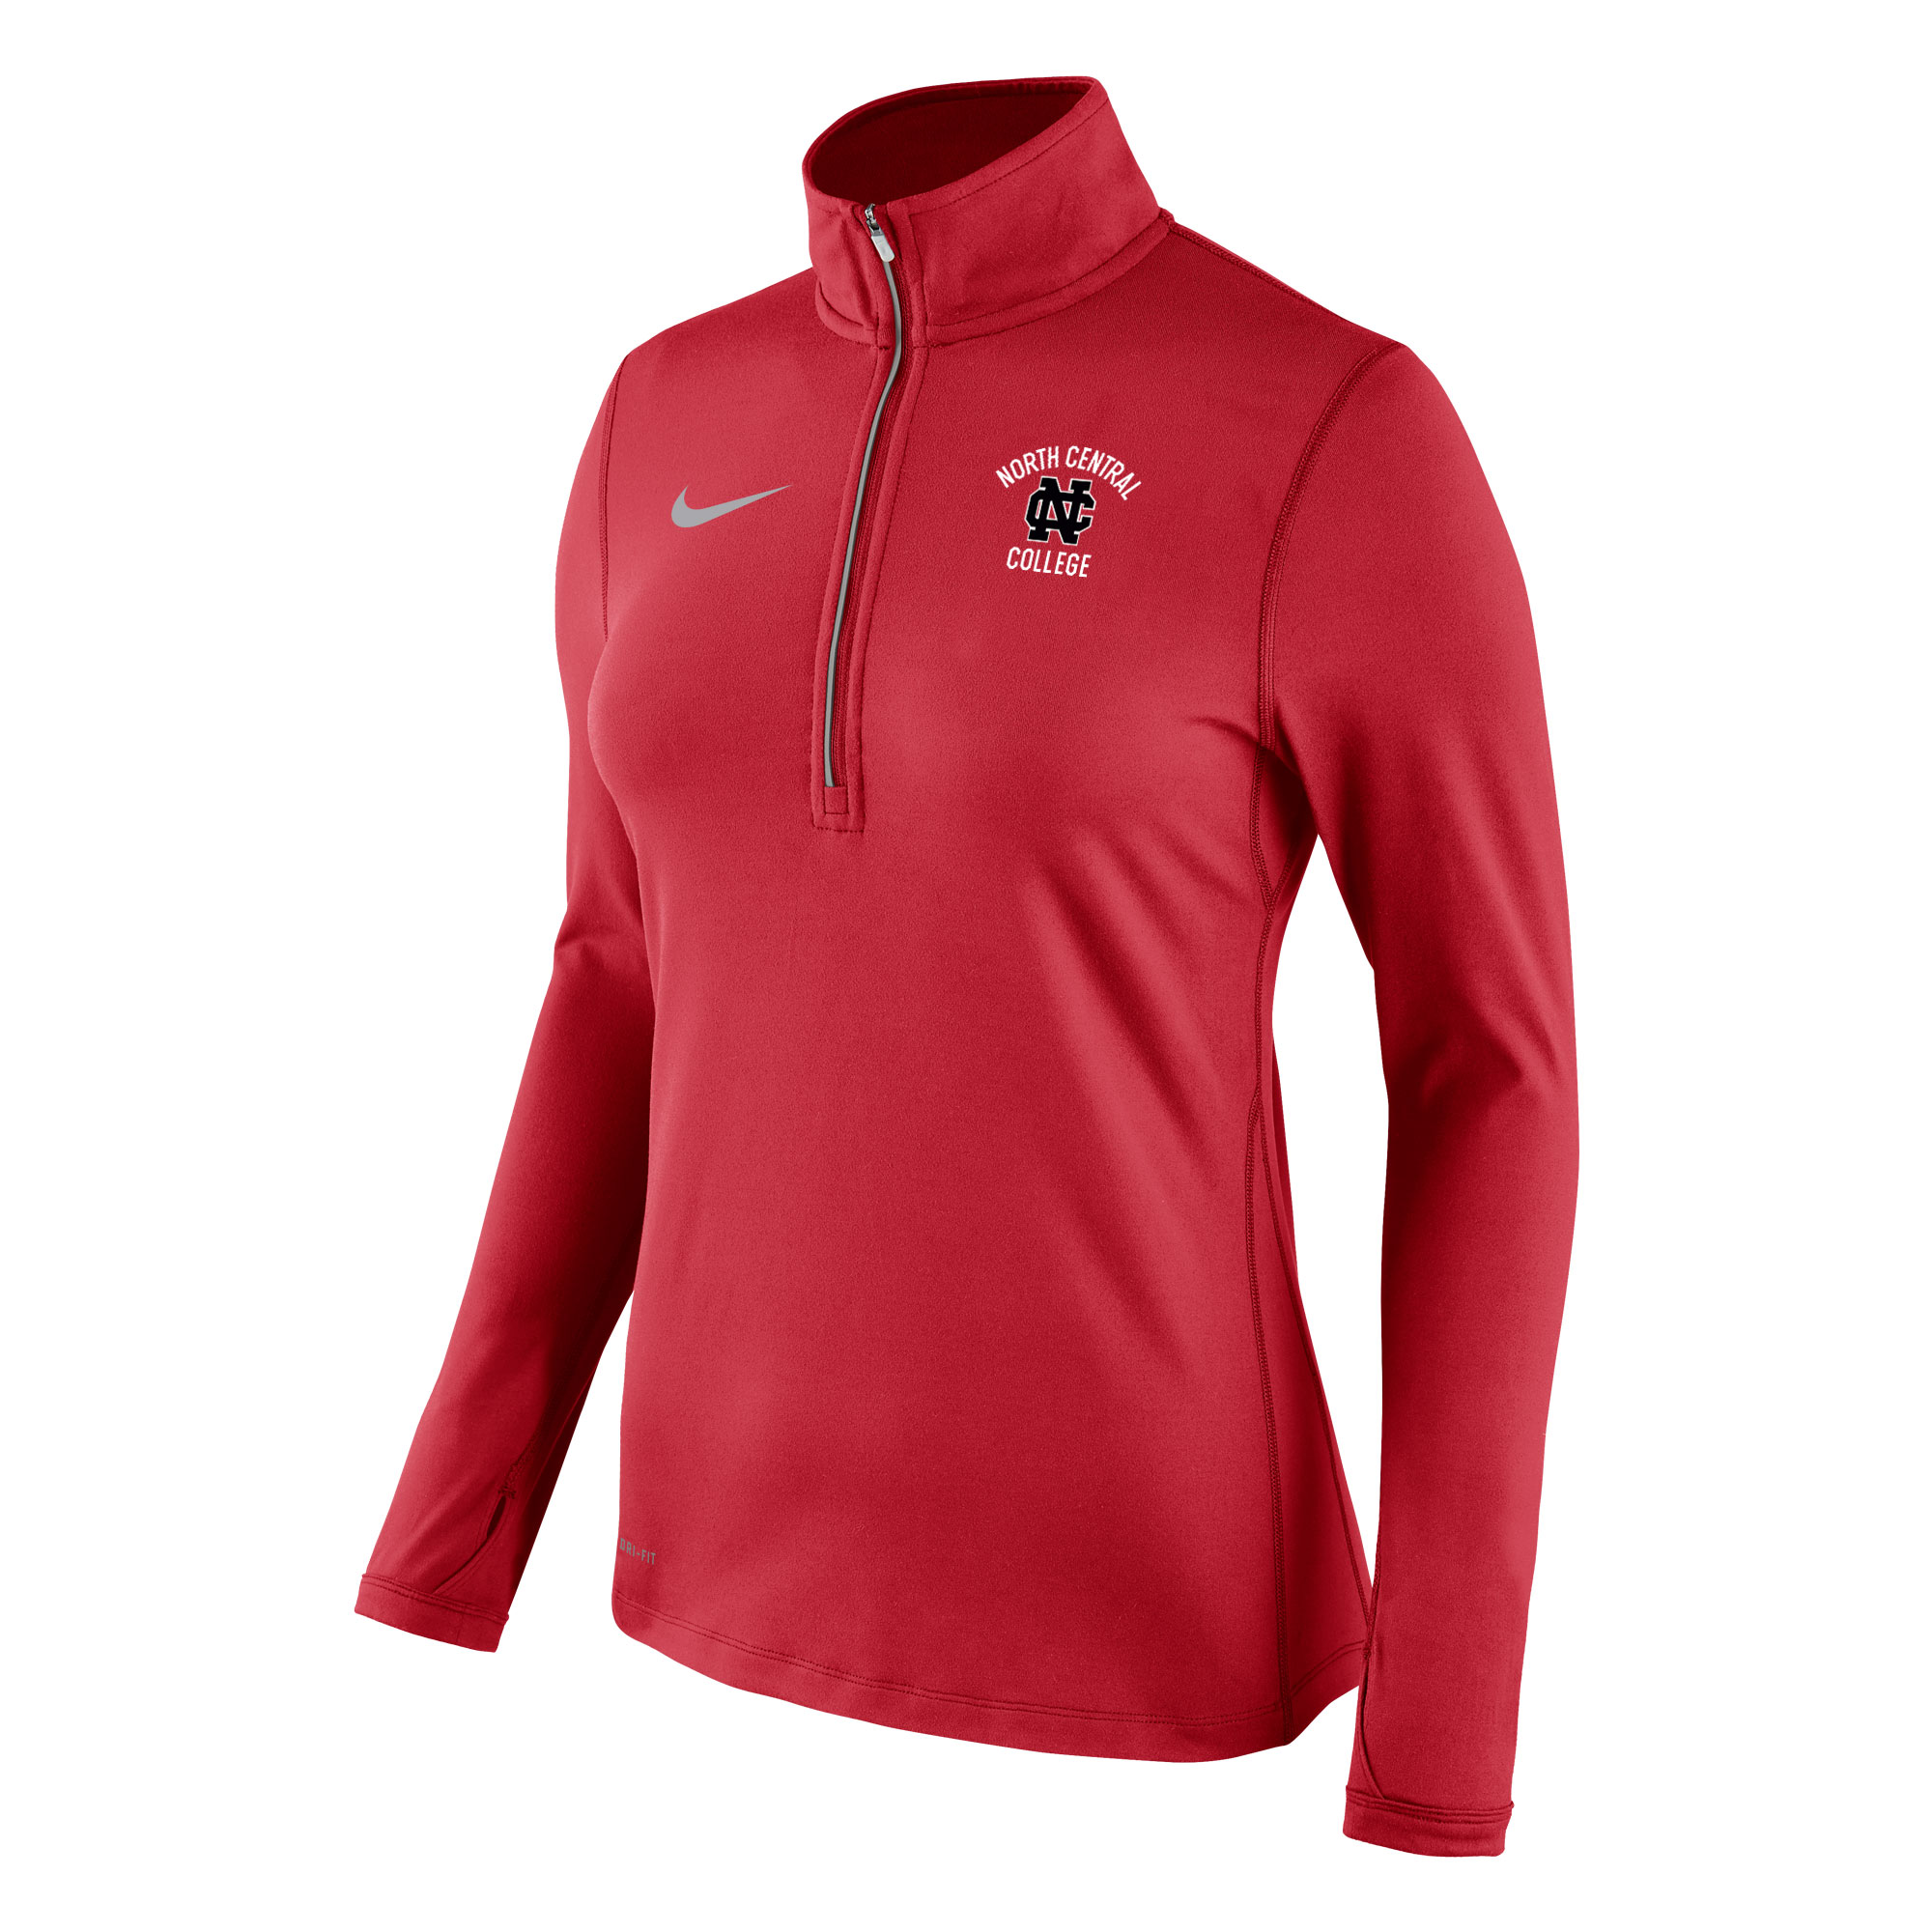 Image for the North Central College Women's Tailgate Element 1/2 Zip by Nike - Clearance product